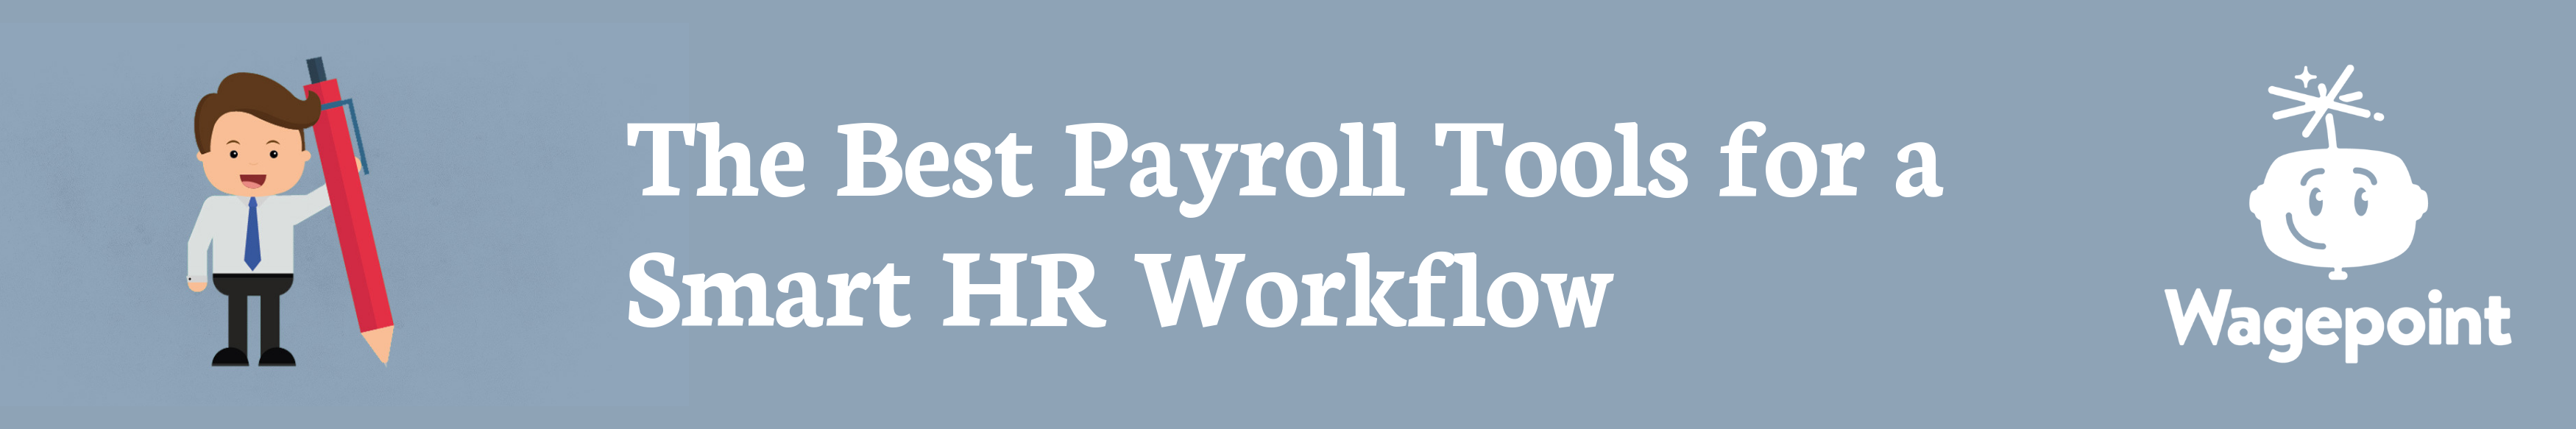 wagepoint onboarding guide payroll tools banner